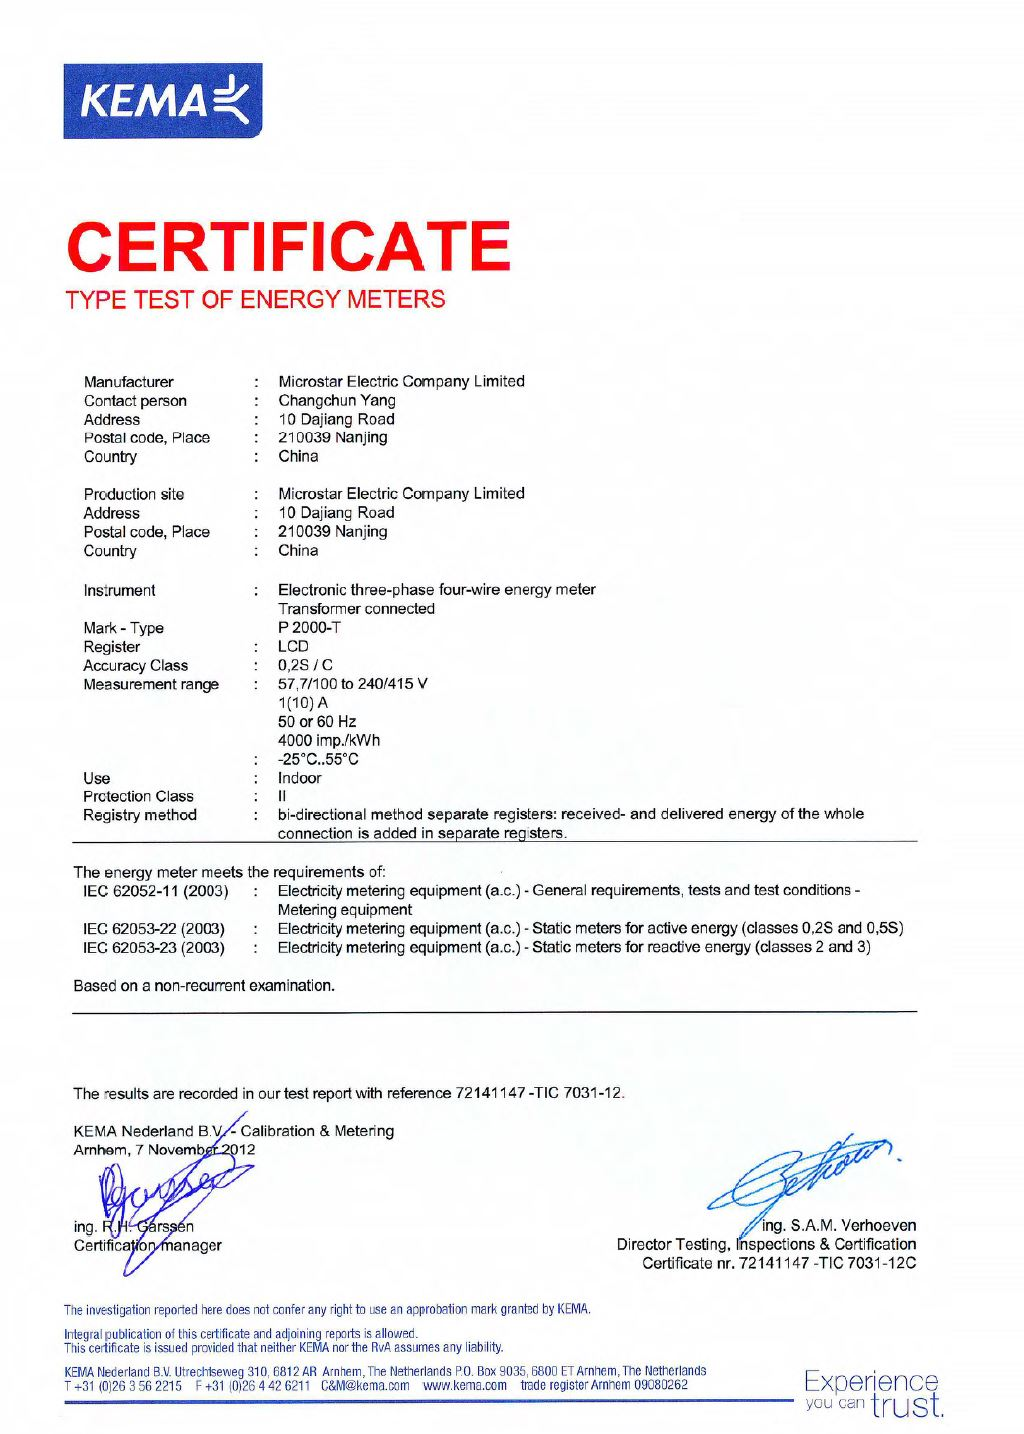 P2000-T IEC Type Test Certificate by KEMA